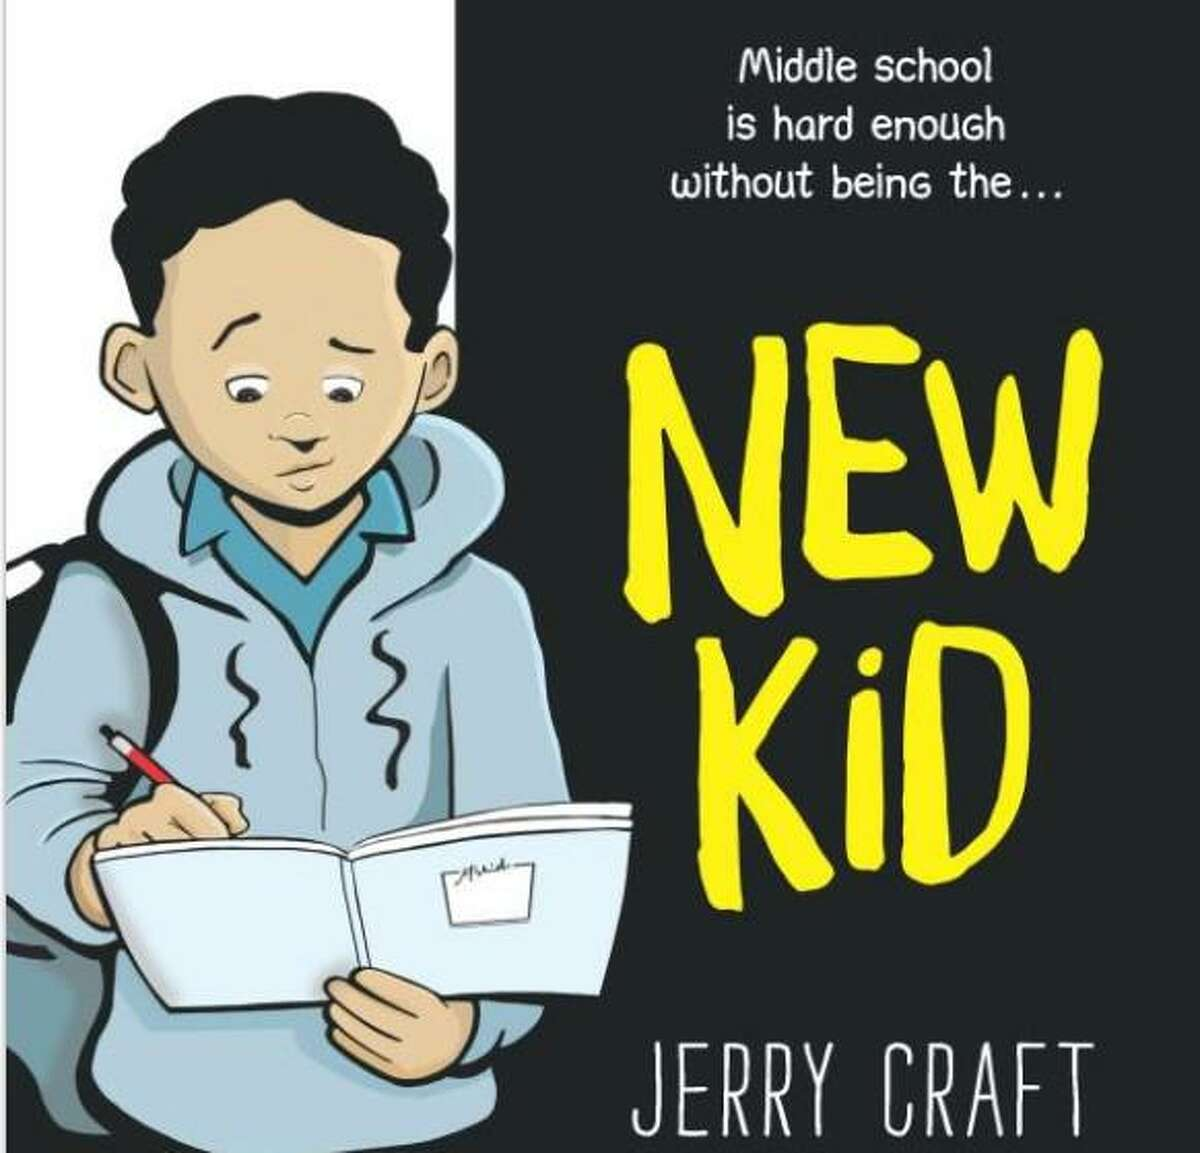 Jerry Craft is the author of numerous award-willing children's books.